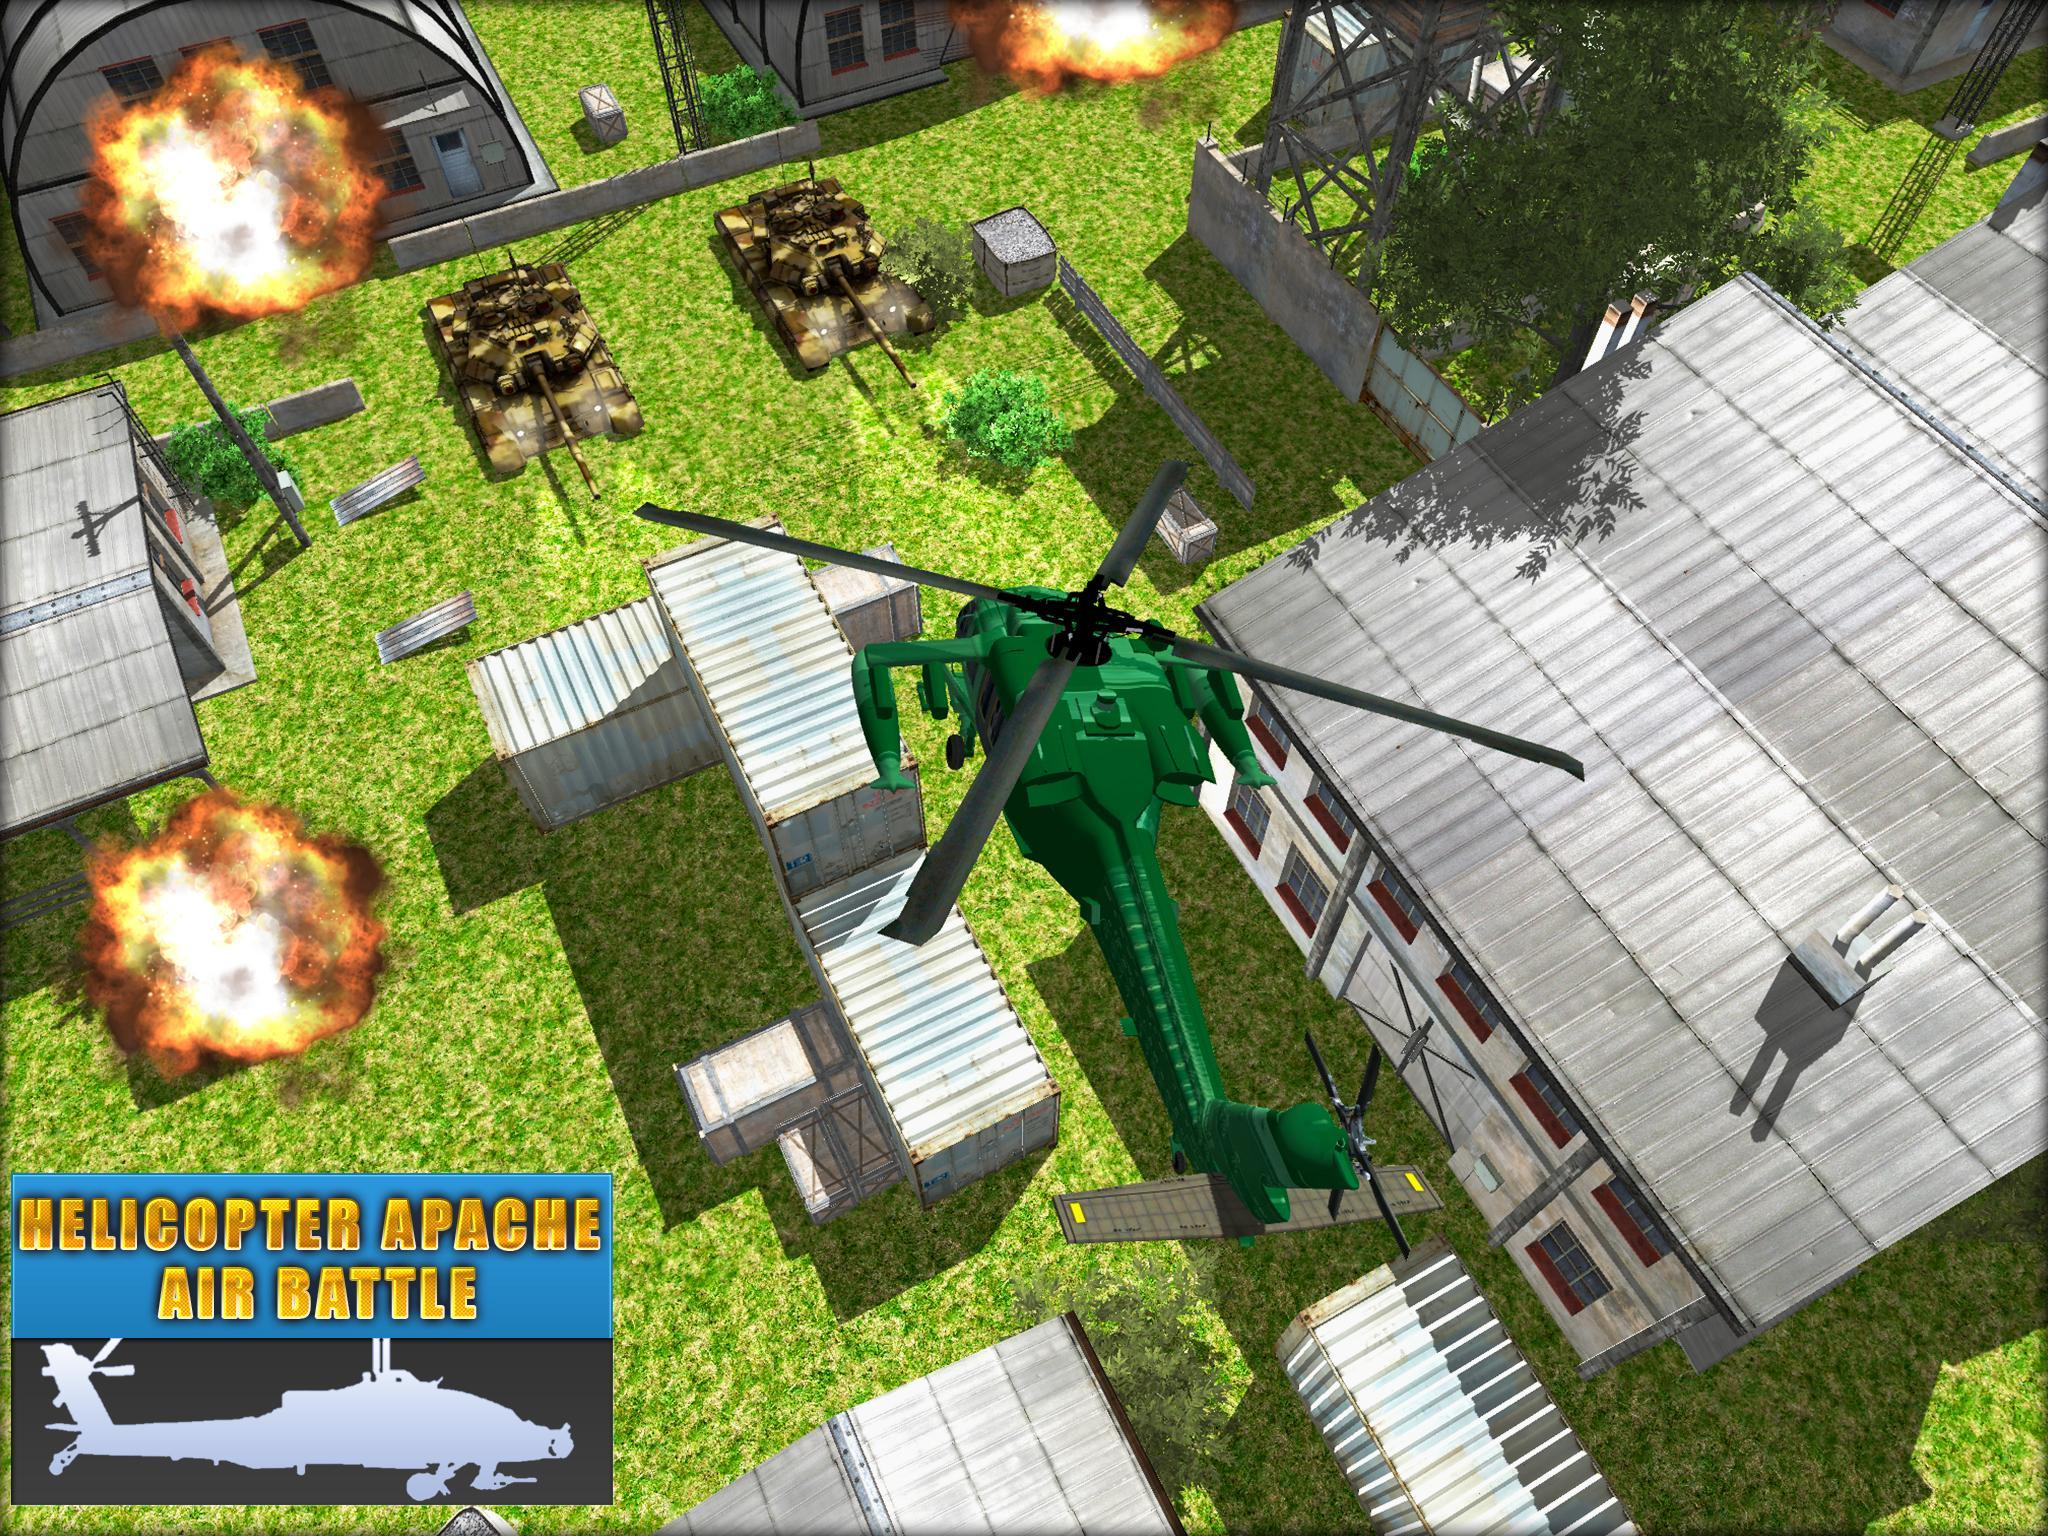 Helicopter Apache Air Battle for Android - APK Download